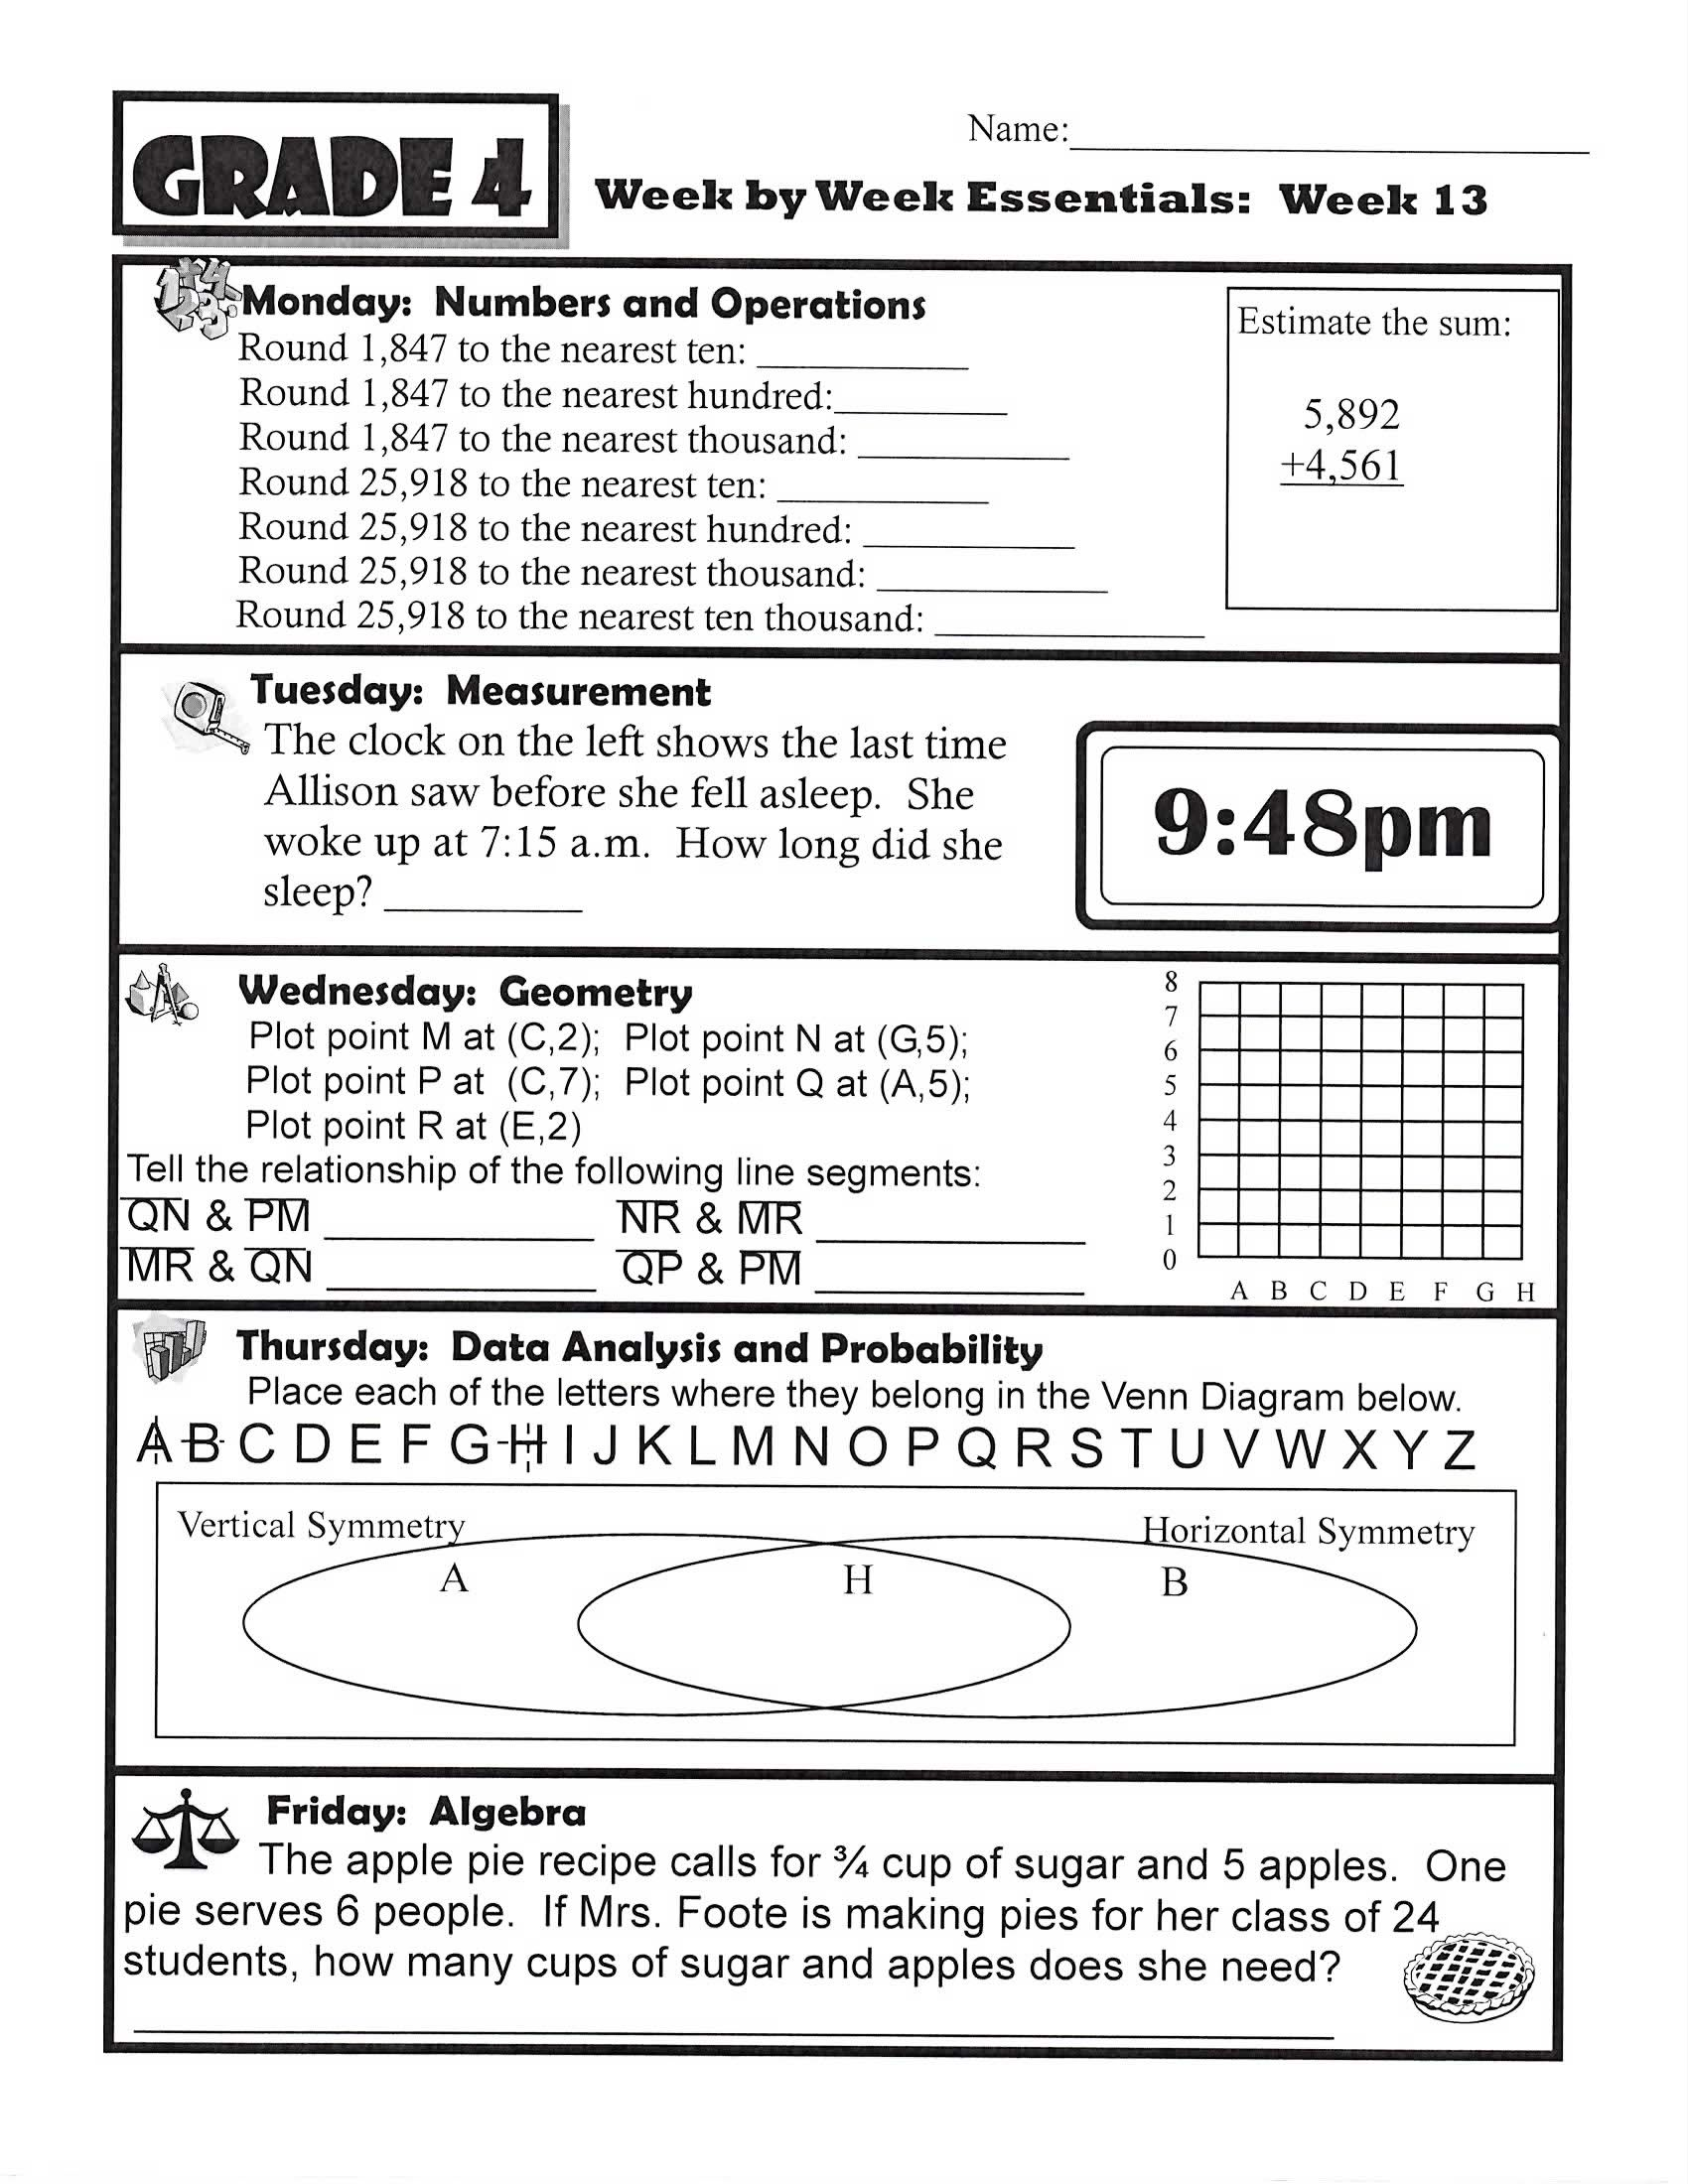 Worksheet Work For 4th Graders 4th grade homework sheets weekly sheet week 3 pinterest homework